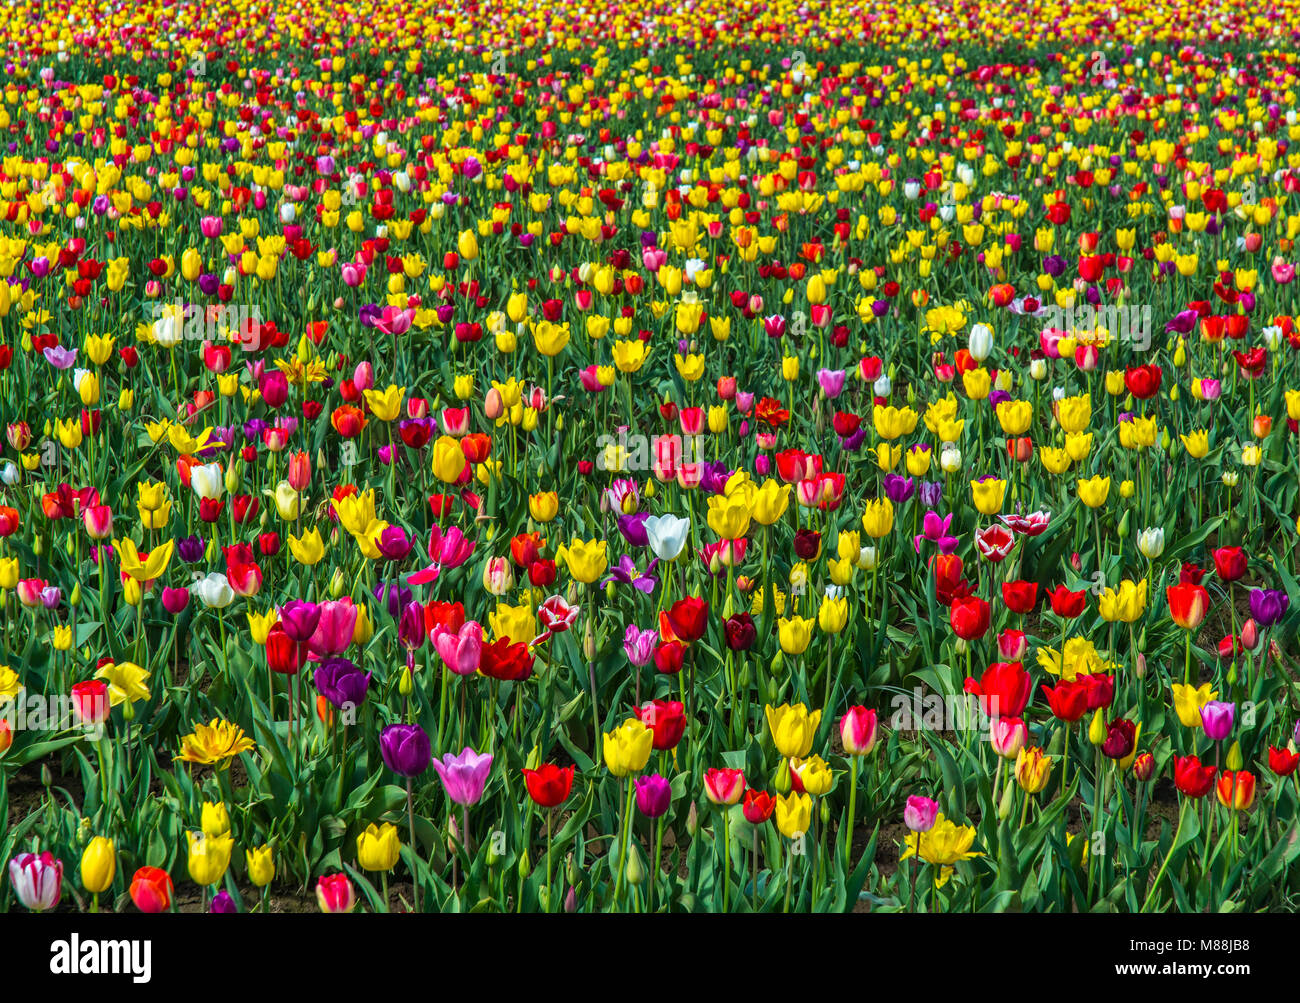 Tip Toeing through a spring field - Stock Image